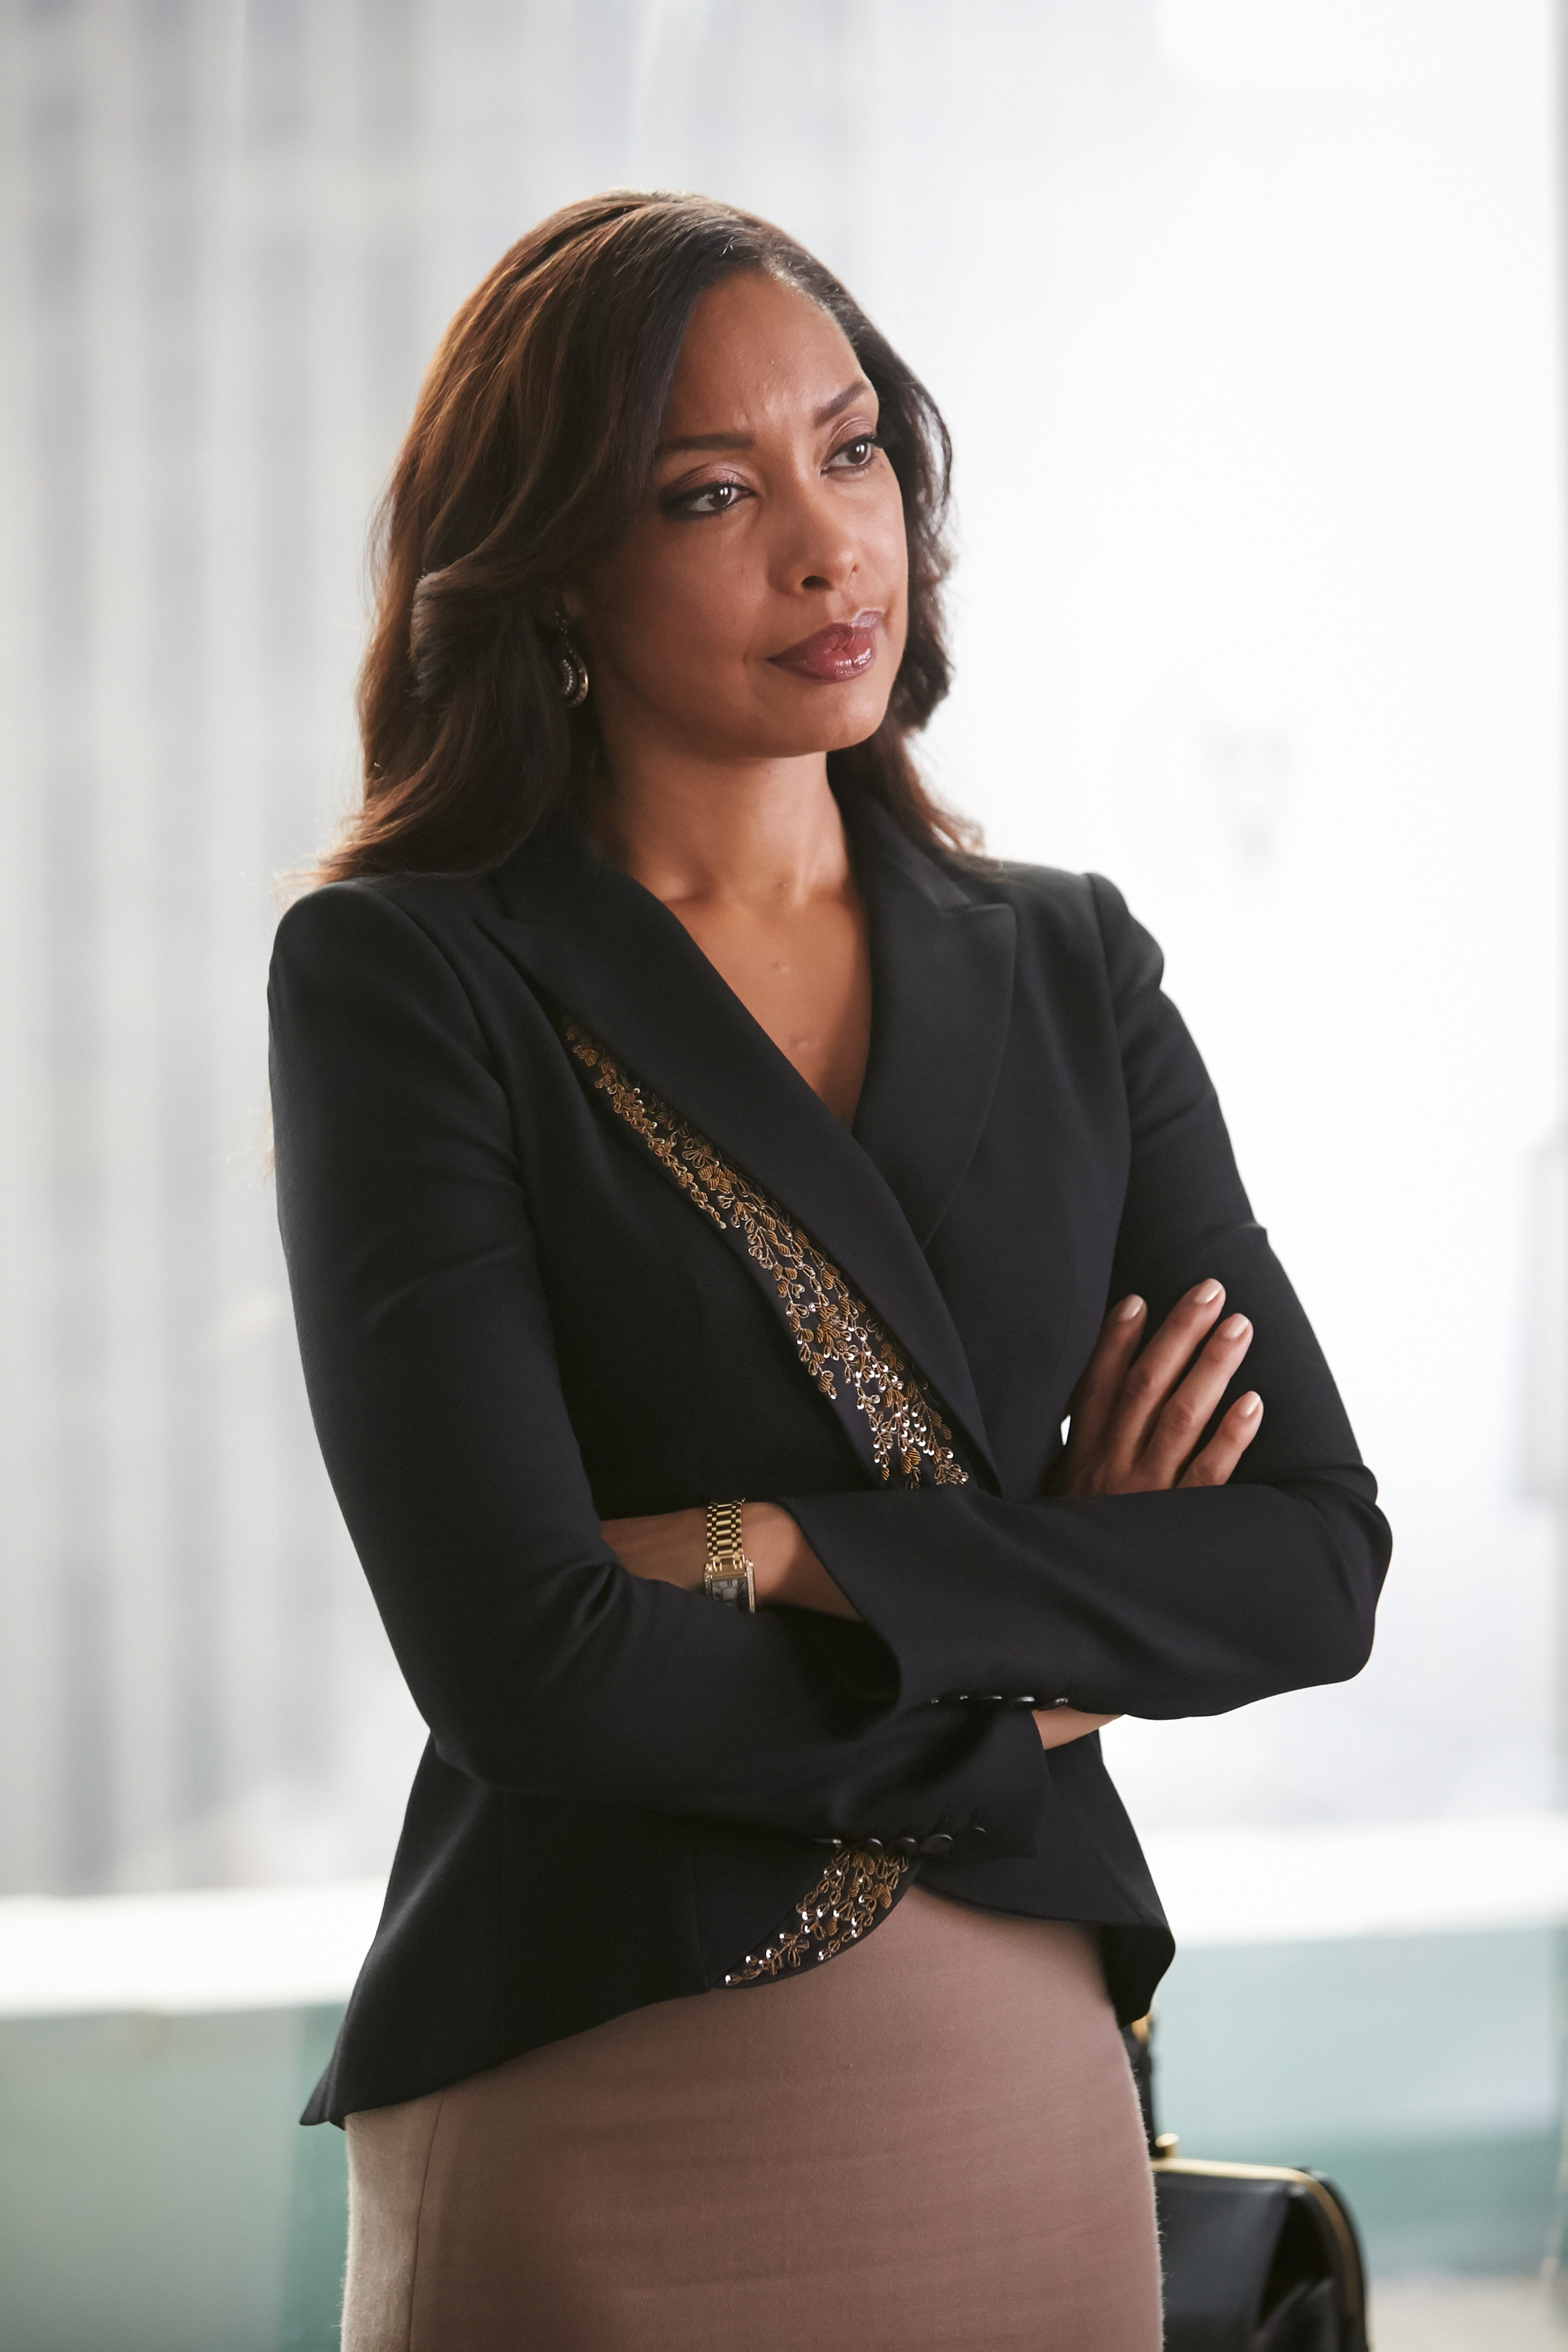 Exclusive fashion photos from Suits: Black blazer and brown skirt